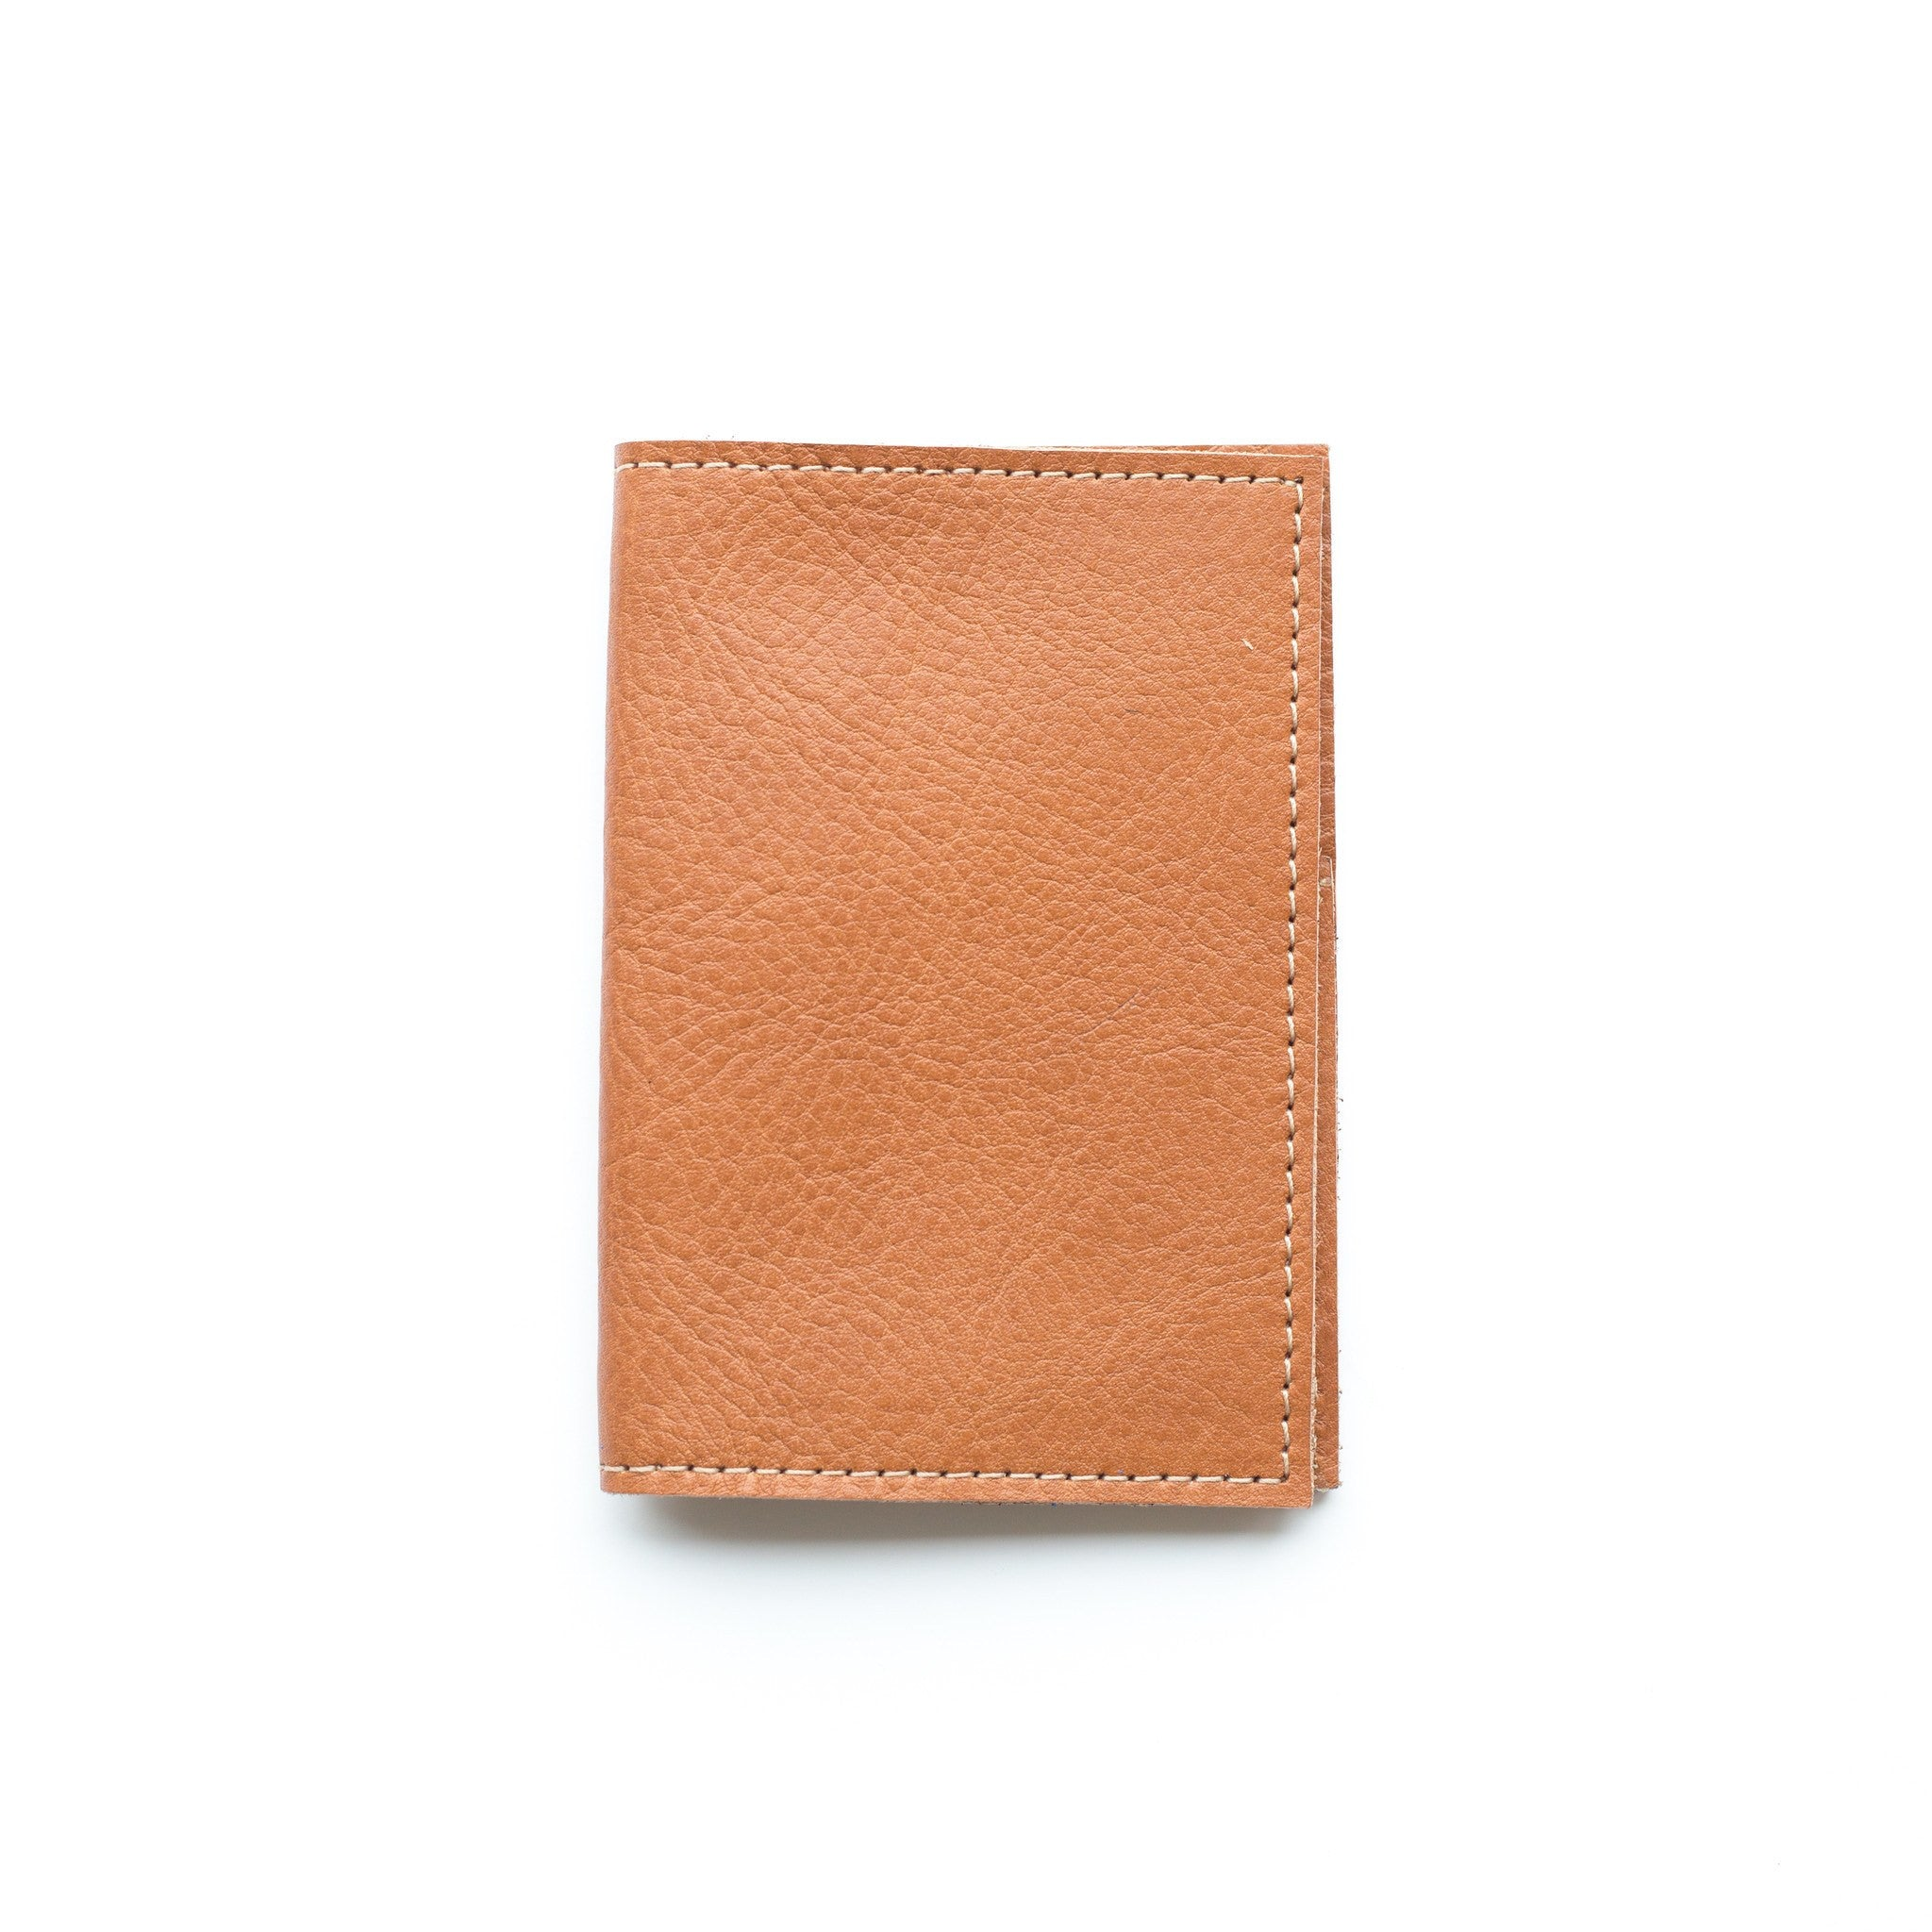 The Mission Wallet